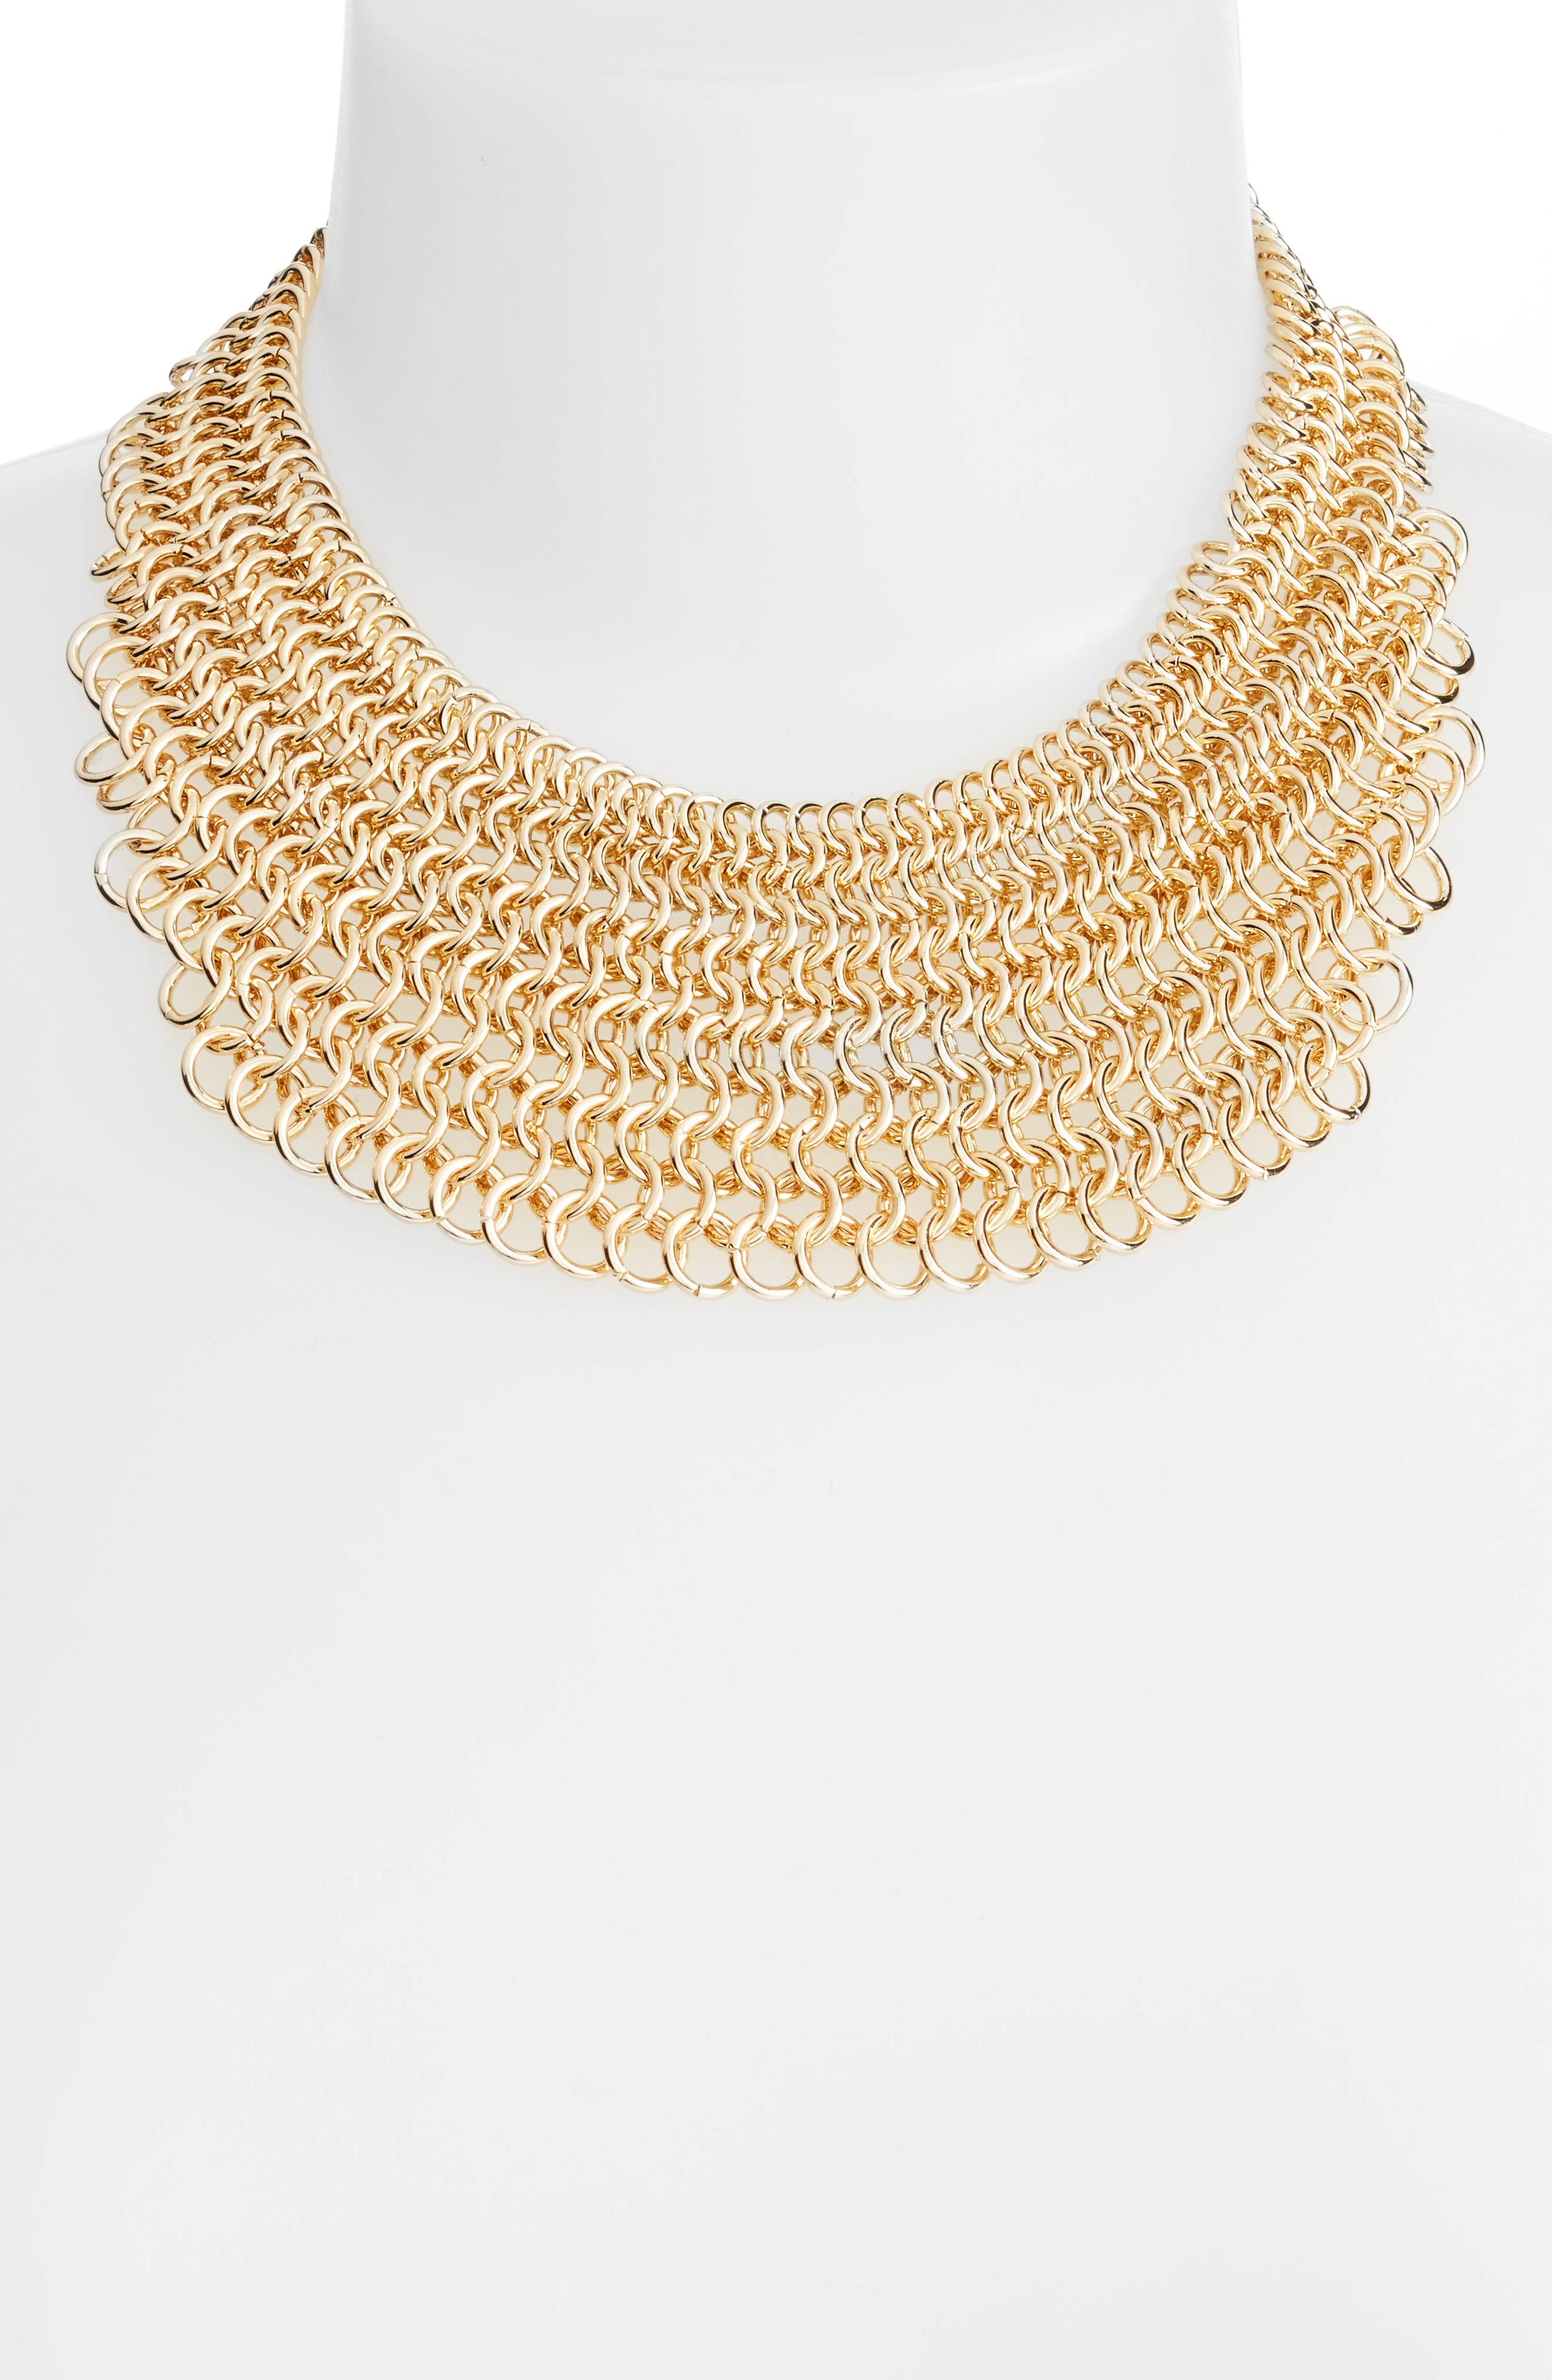 Linked Circle Statement Bib Necklace,                             Alternate thumbnail 2, color,                             710